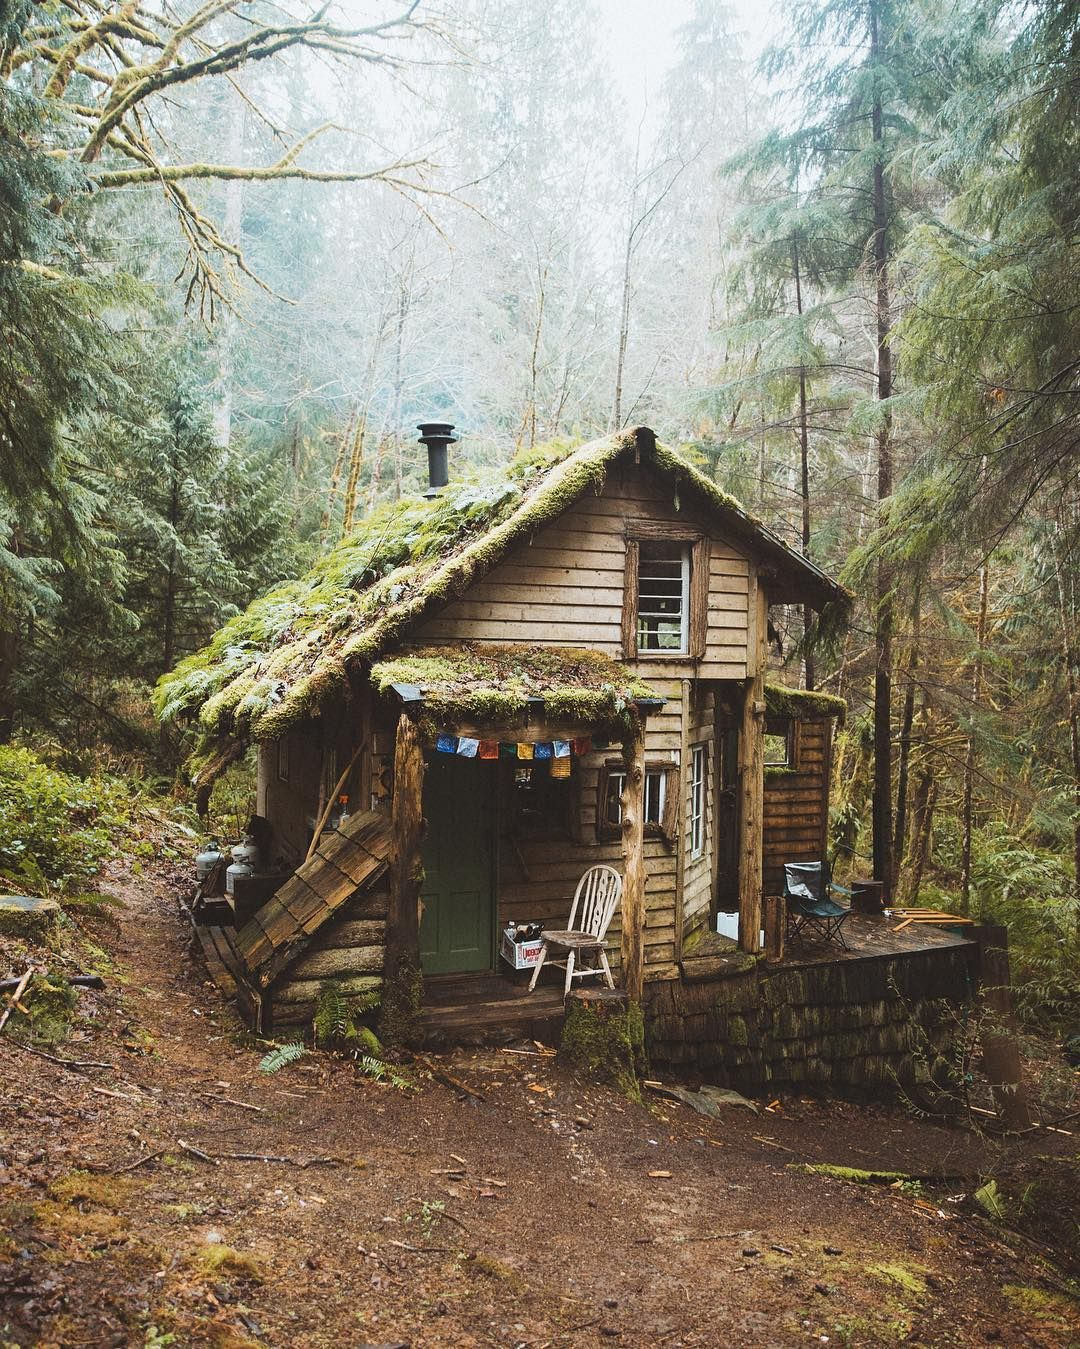 Teeny tiny homes whiskandwhittle source ig andrewtkearns